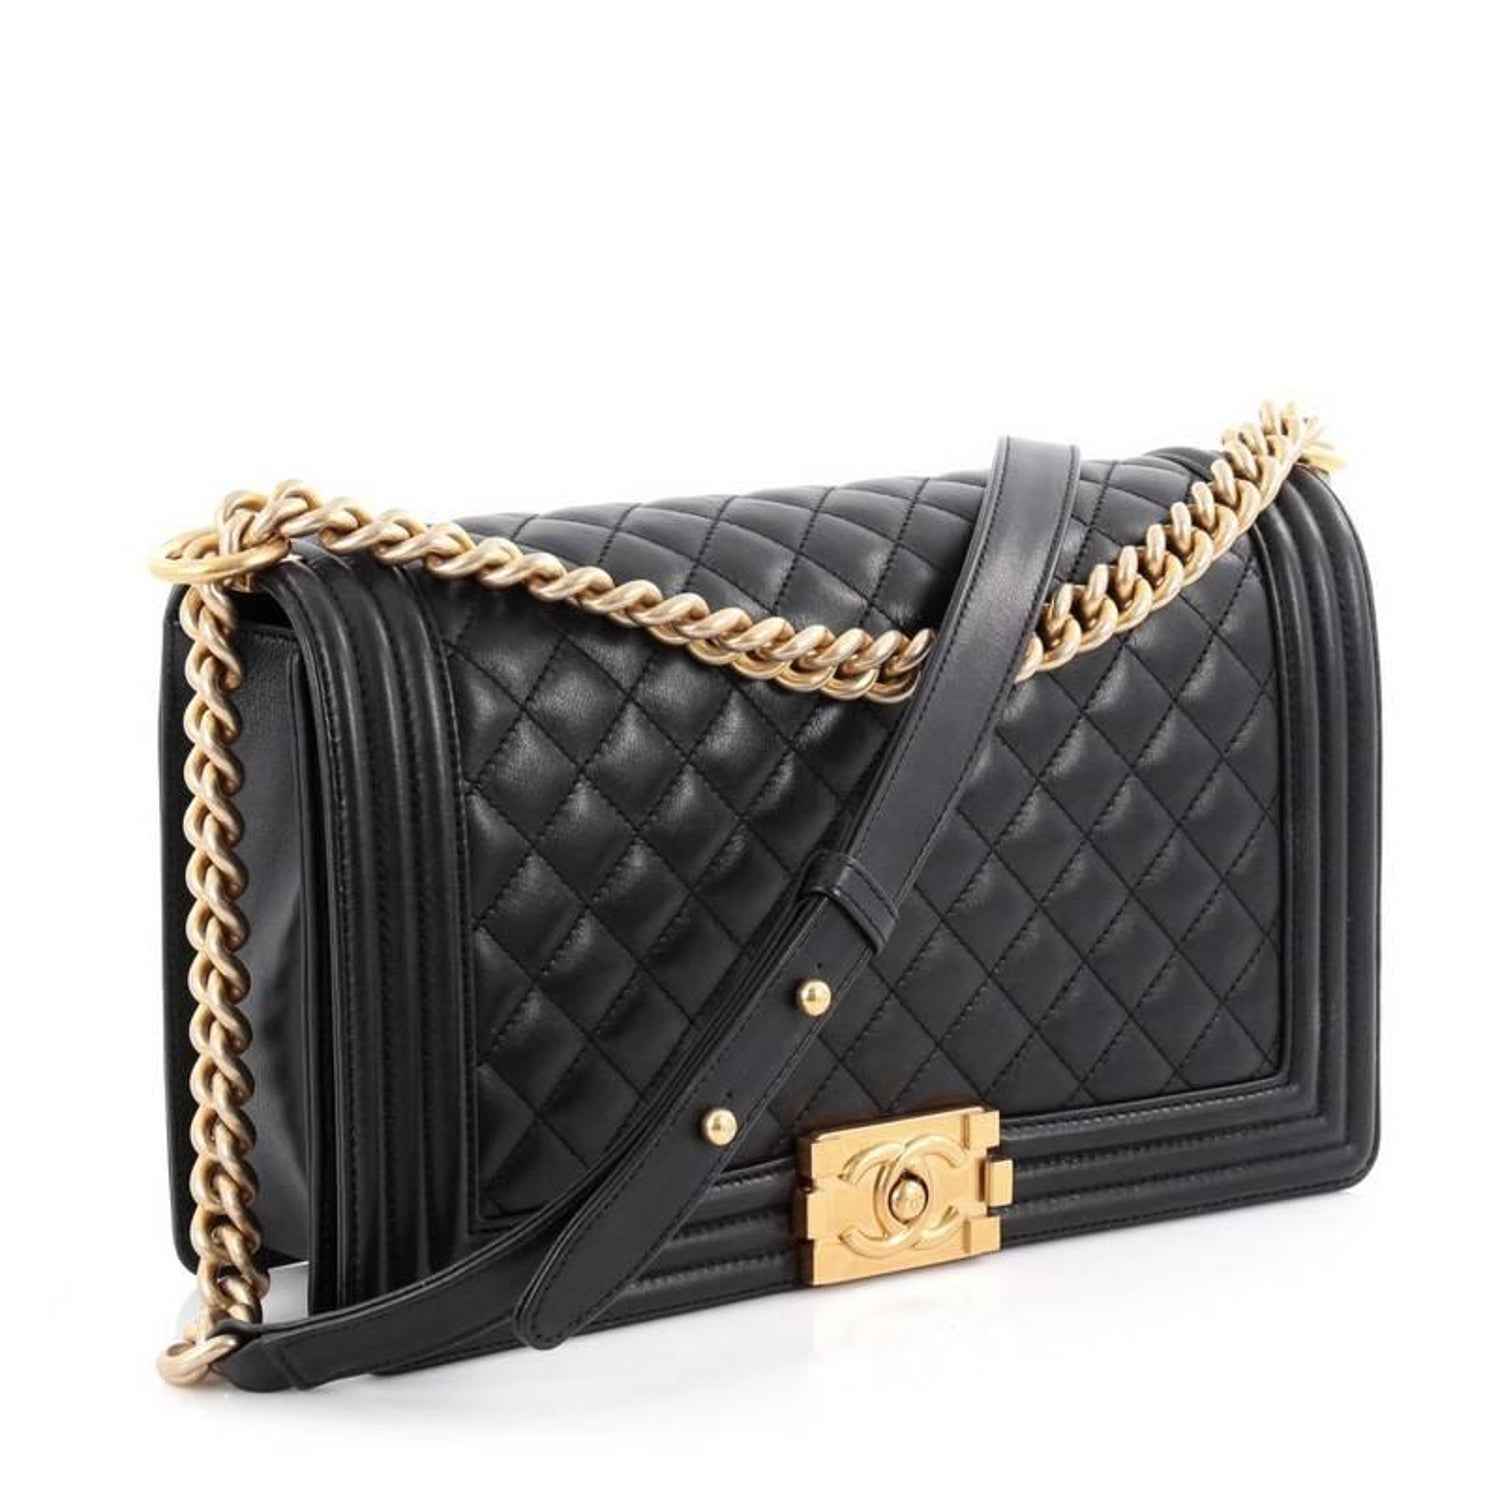 18742042c1f6 Chanel Boy Flap Bag Quilted Calfskin New Medium at 1stdibs